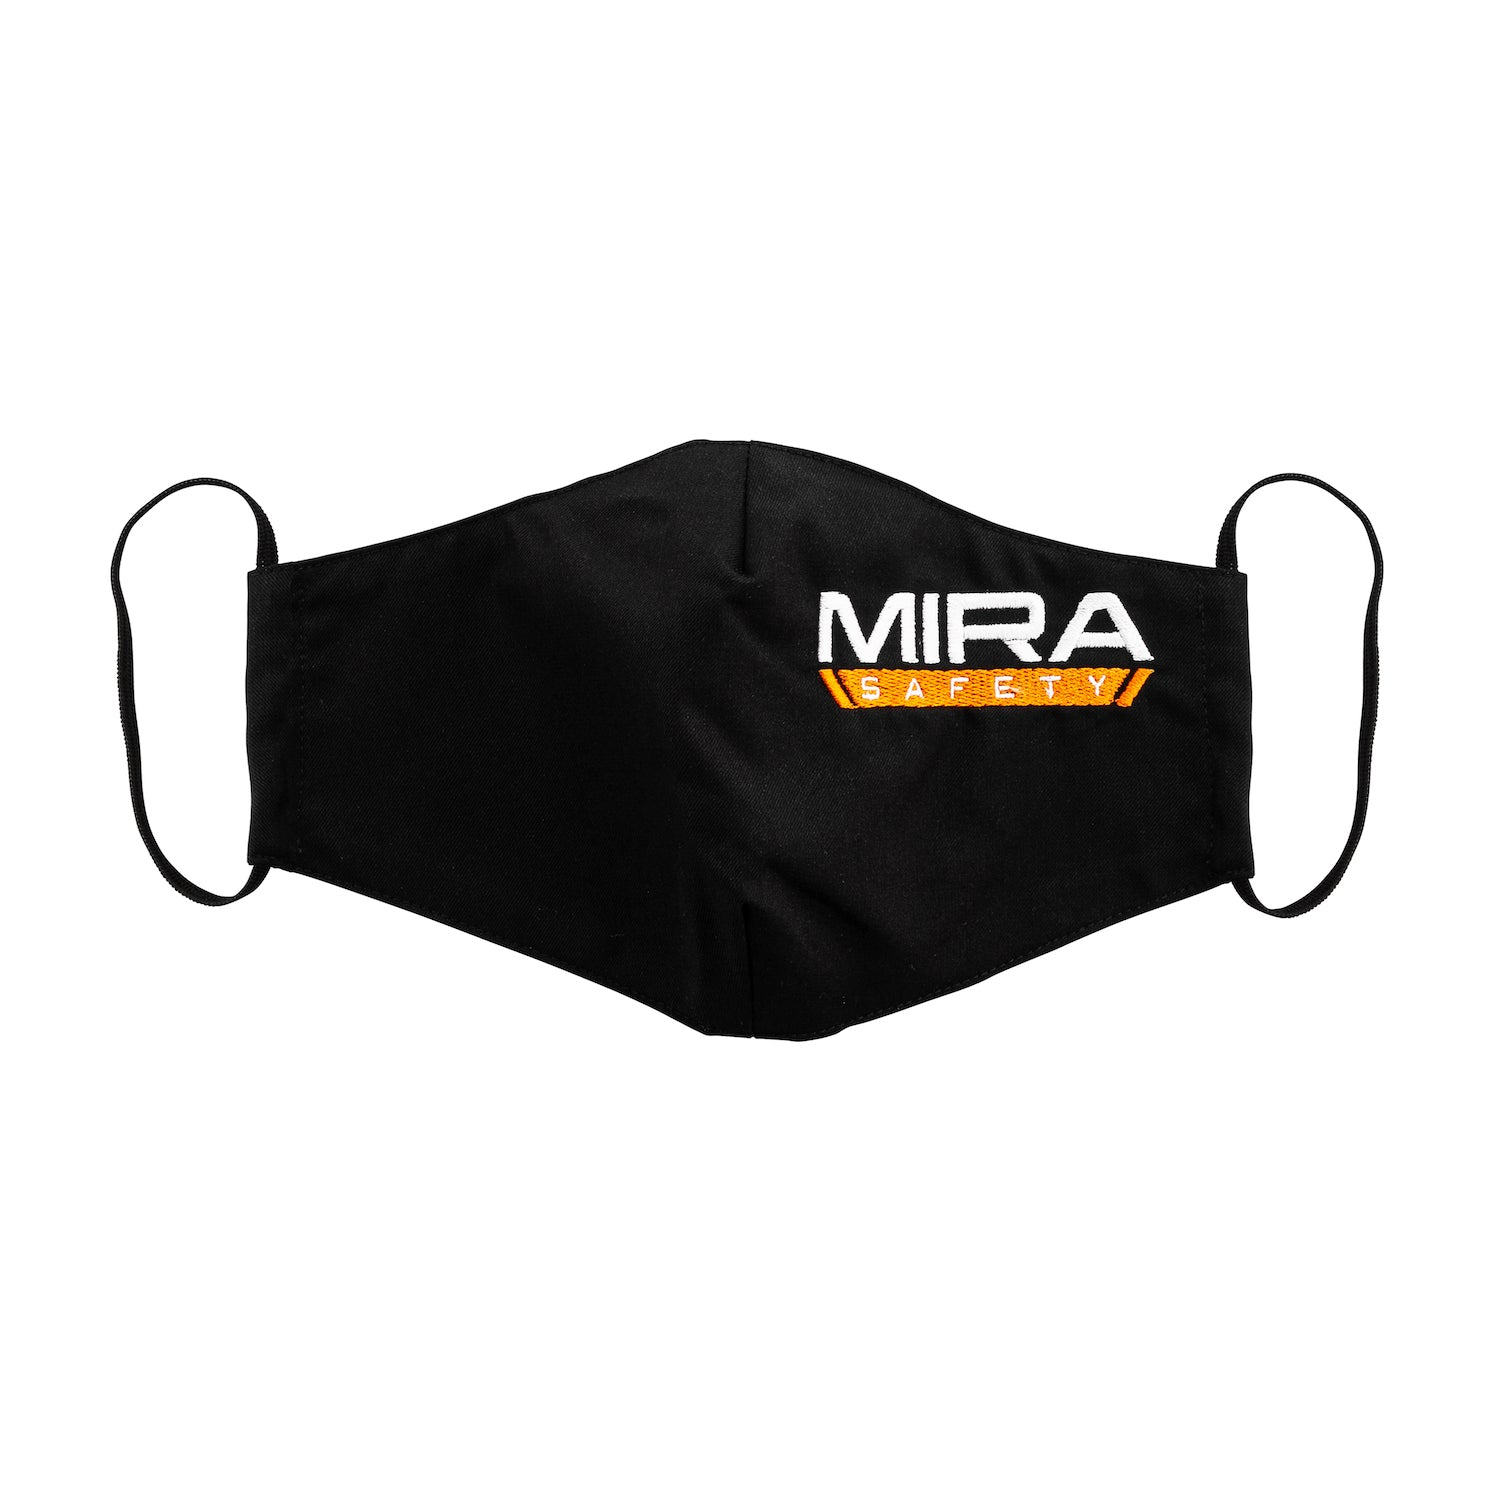 Front view of the MIRA Safety Mask with the classic logo